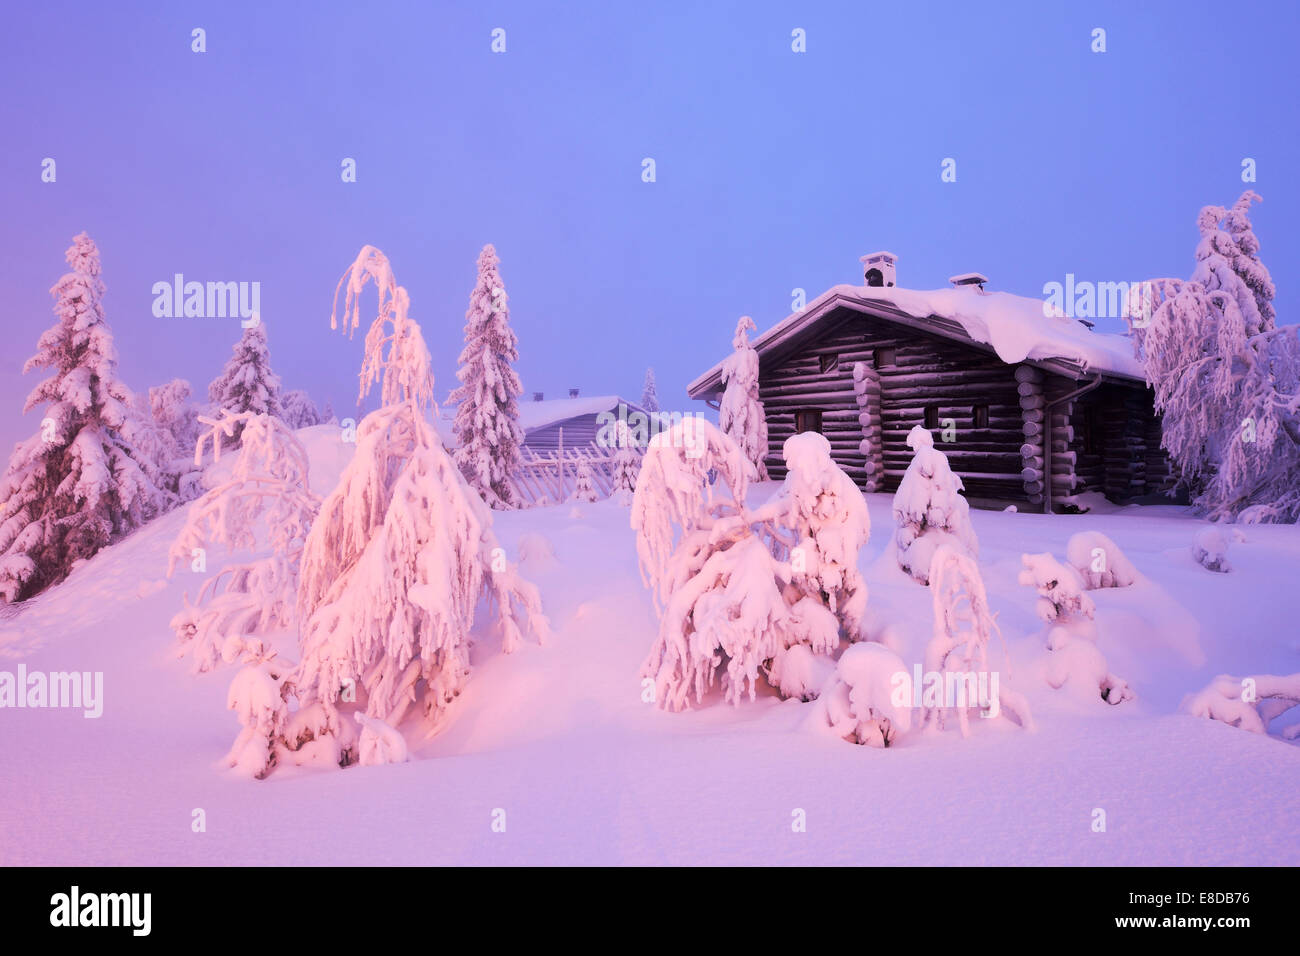 Finnish log cabin in the snow-covered landscape, Iso Syöte, Lapland, Finland - Stock Image